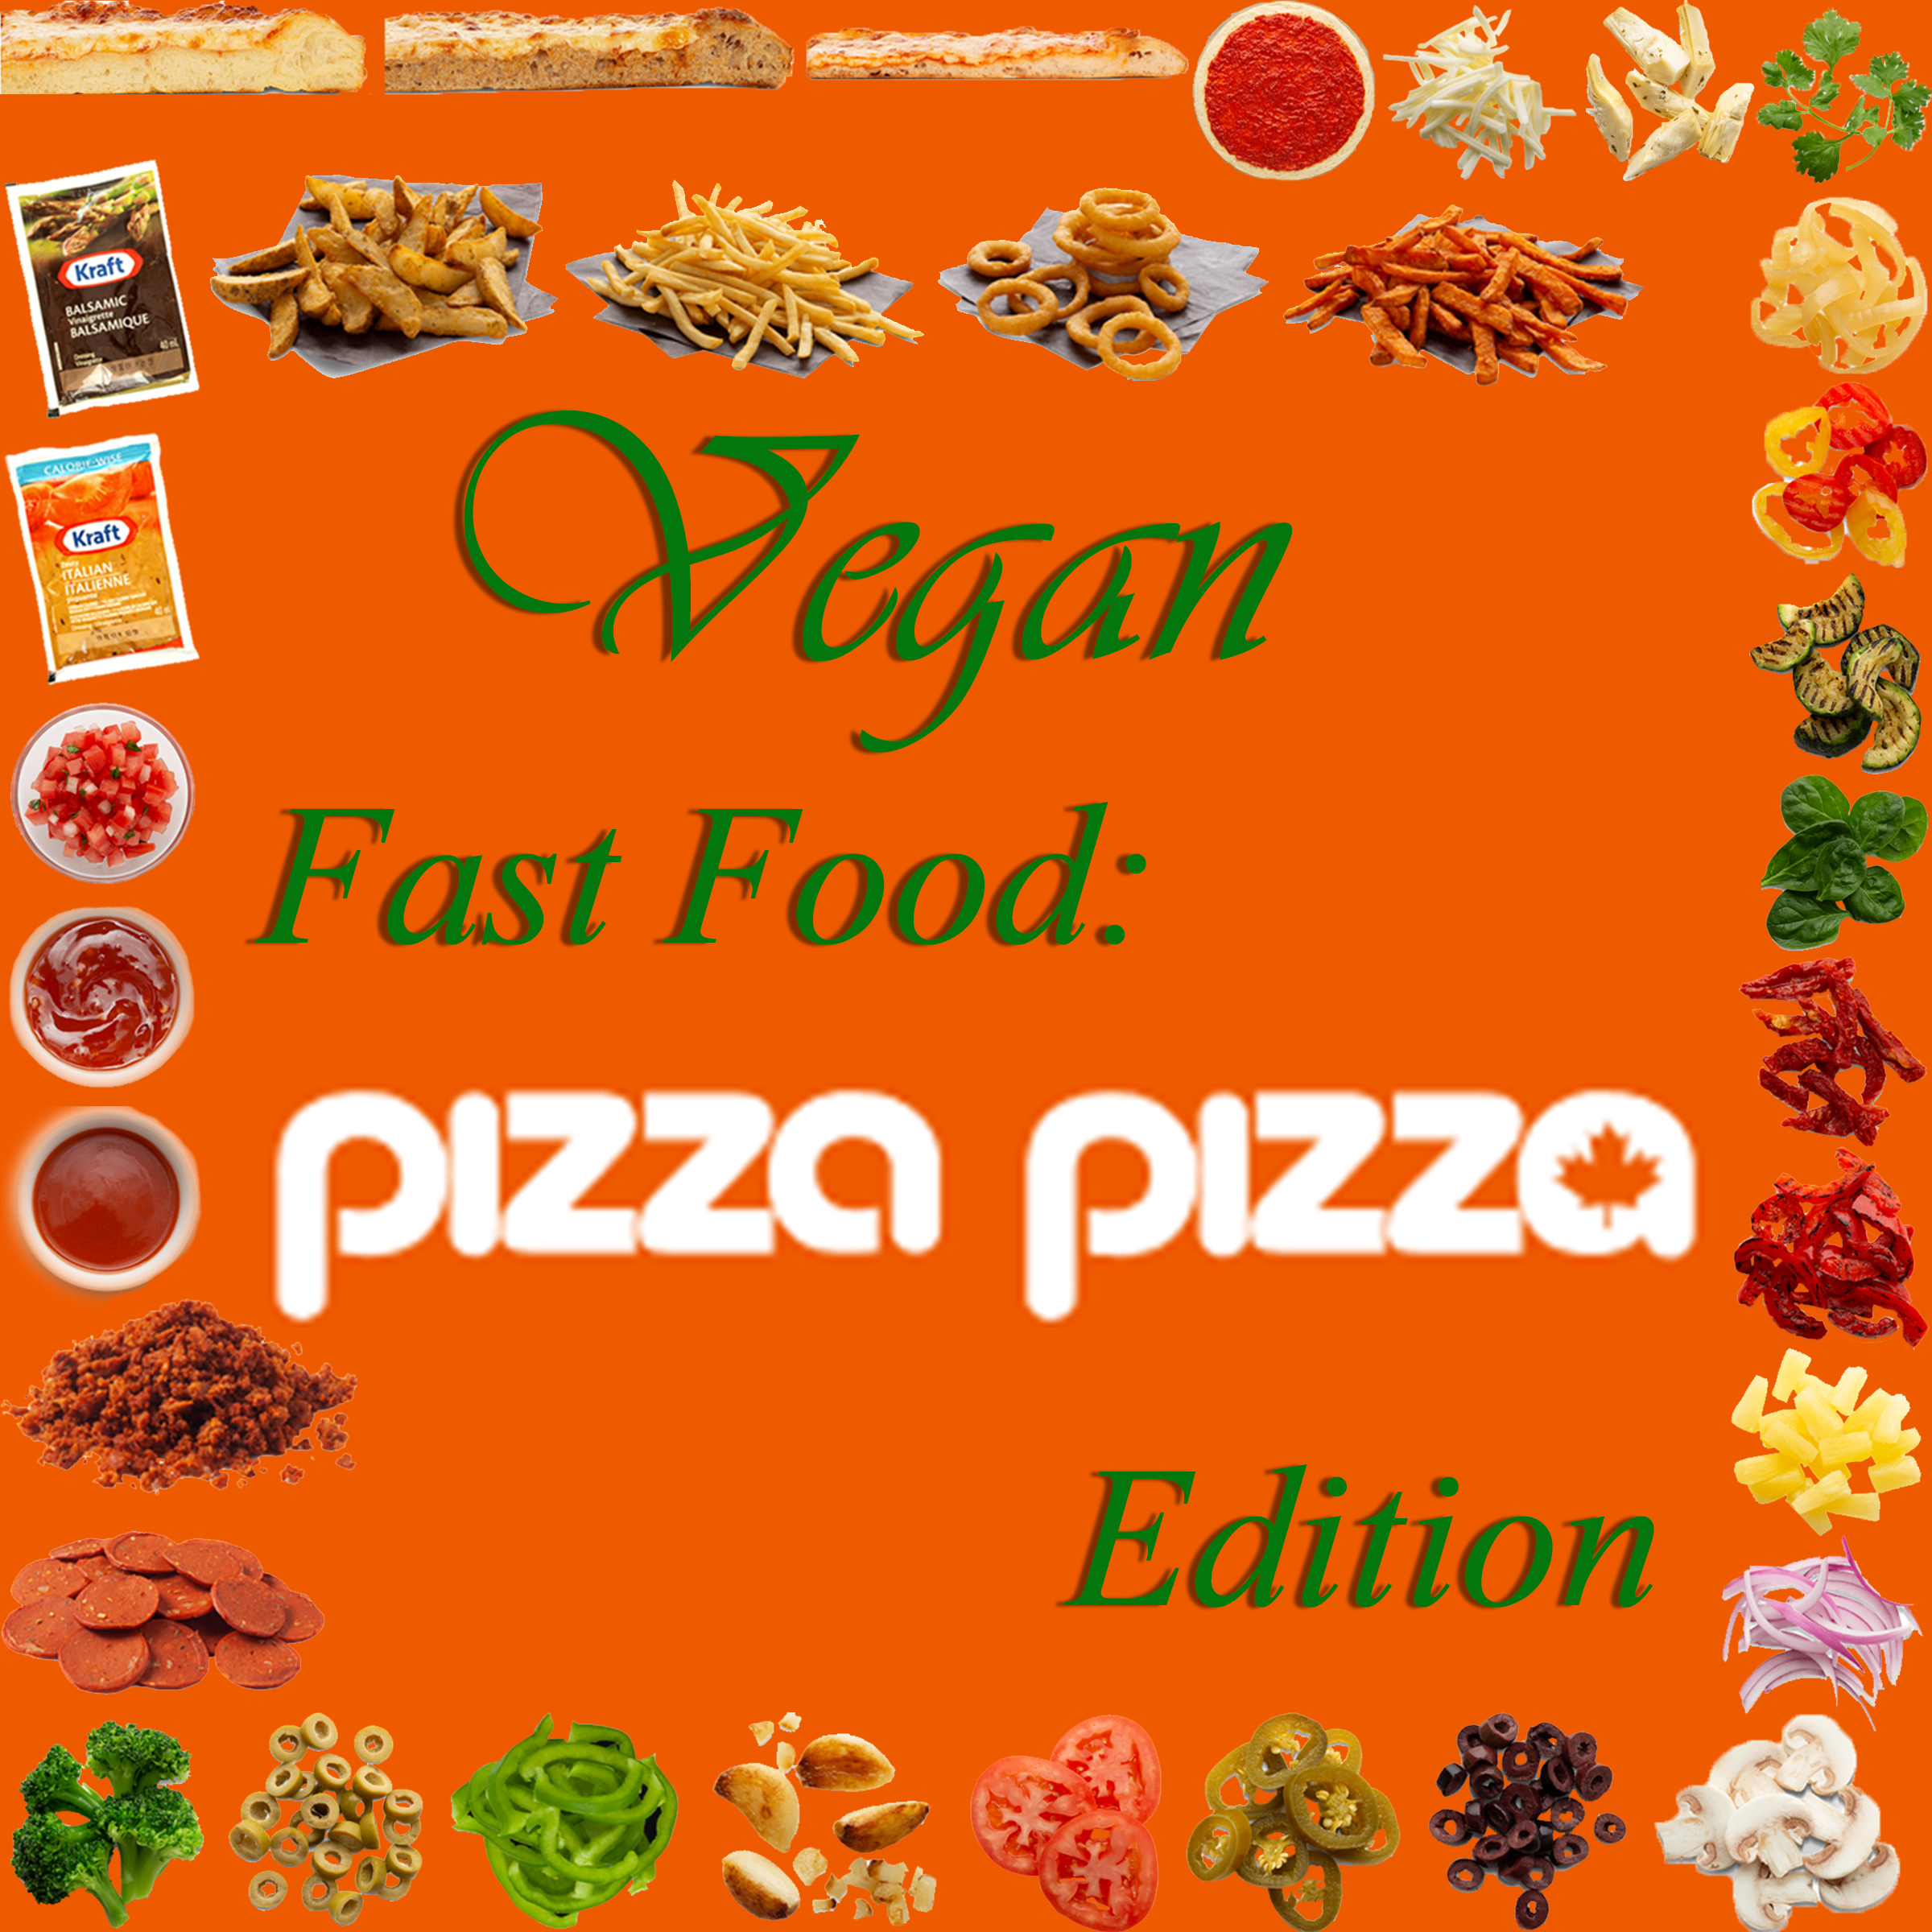 AterImber.com - The Veg Life - Vegan Fast Food: PizzaPizza Edition - vegan food, vegan fast food, Pizza Pizza, vegan options